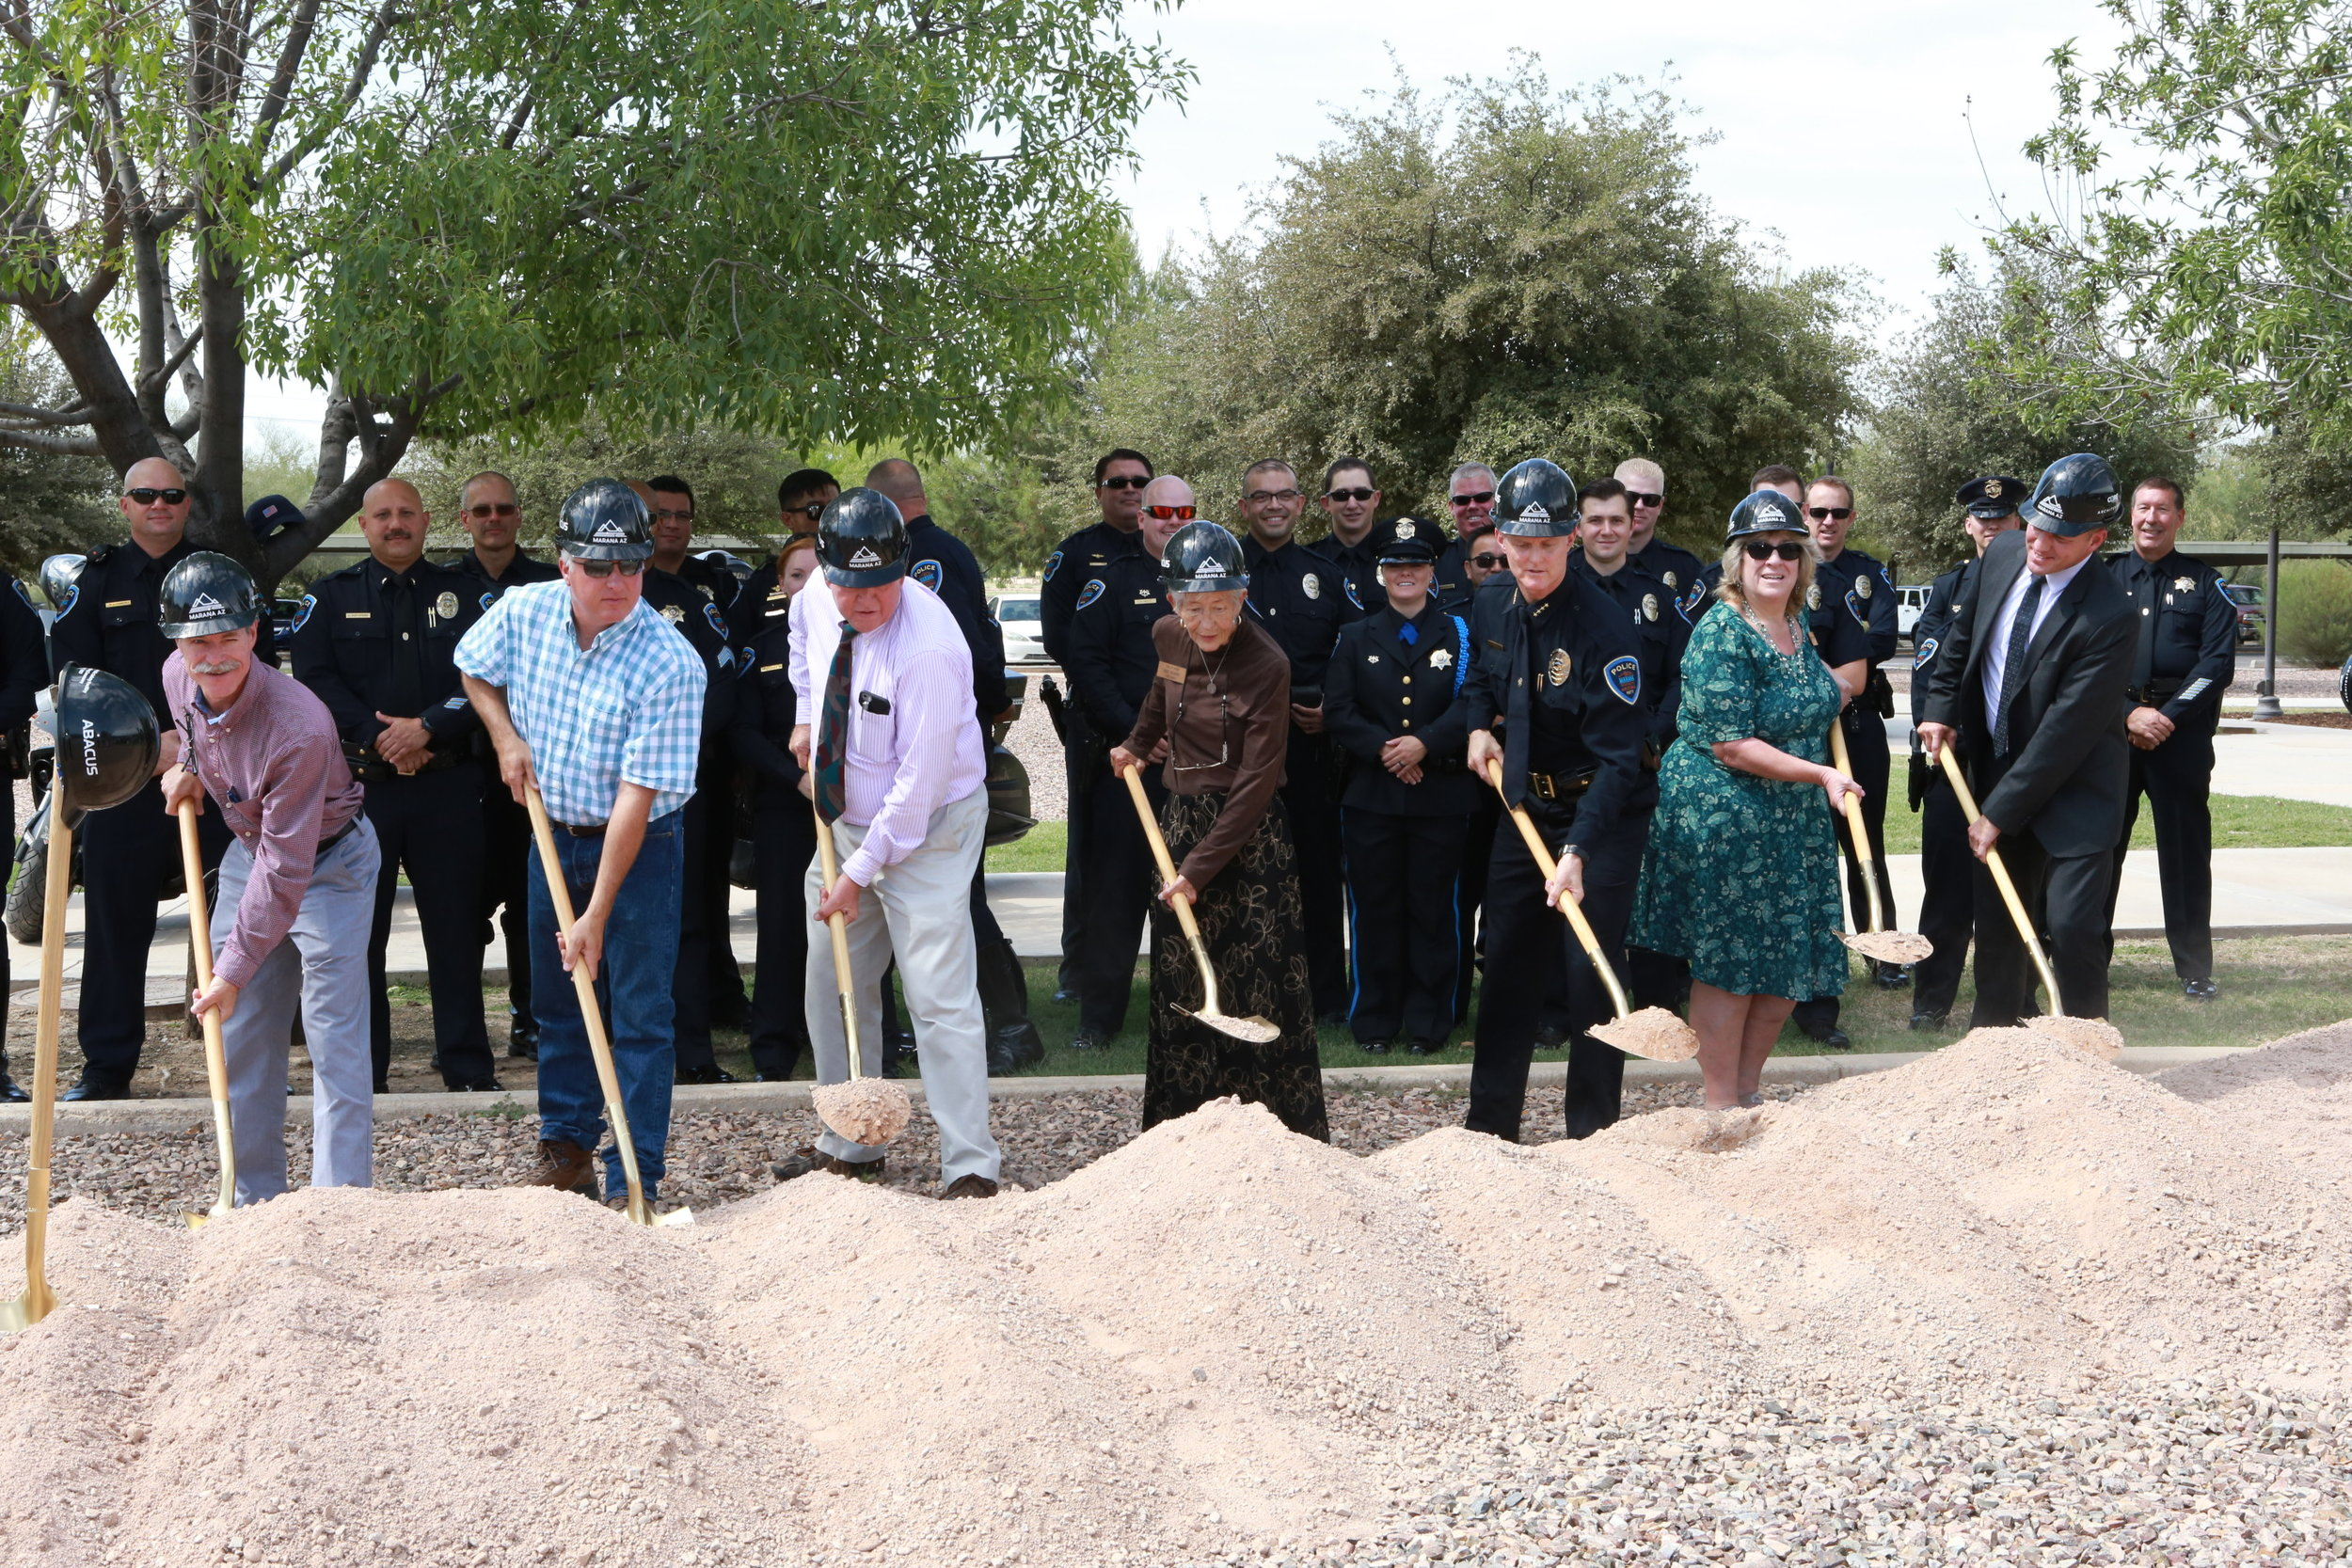 Left to right: Councilmember Bowen, Vice Mayor Post, Mayor Honea, Councilmember McGorray, Police Chief Rozema, Councilmember Comerford, and Town Manager Gilbert Davidson break ground for the new police facility.